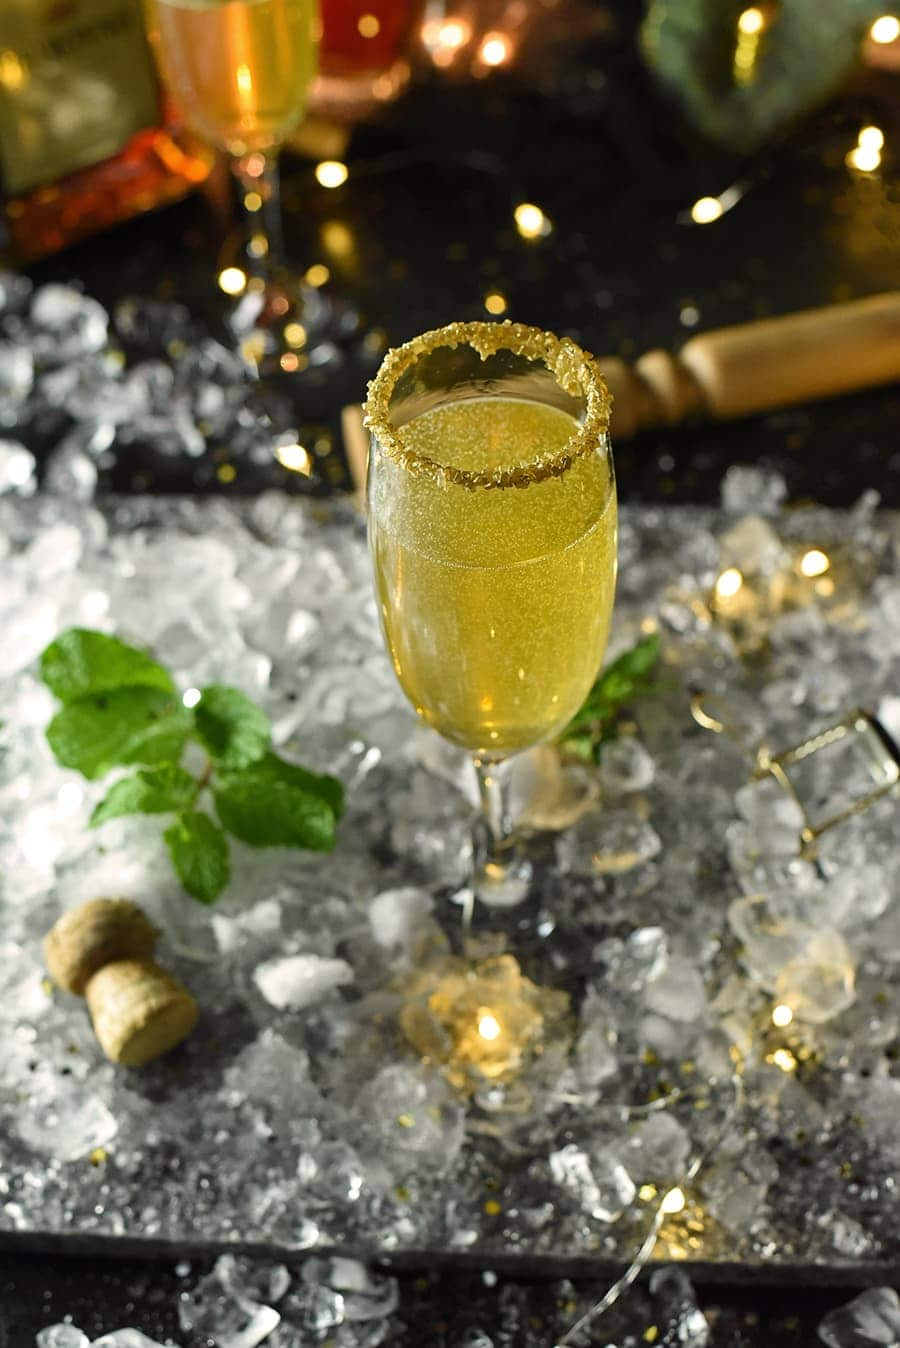 Champagne flute surrounded by ice